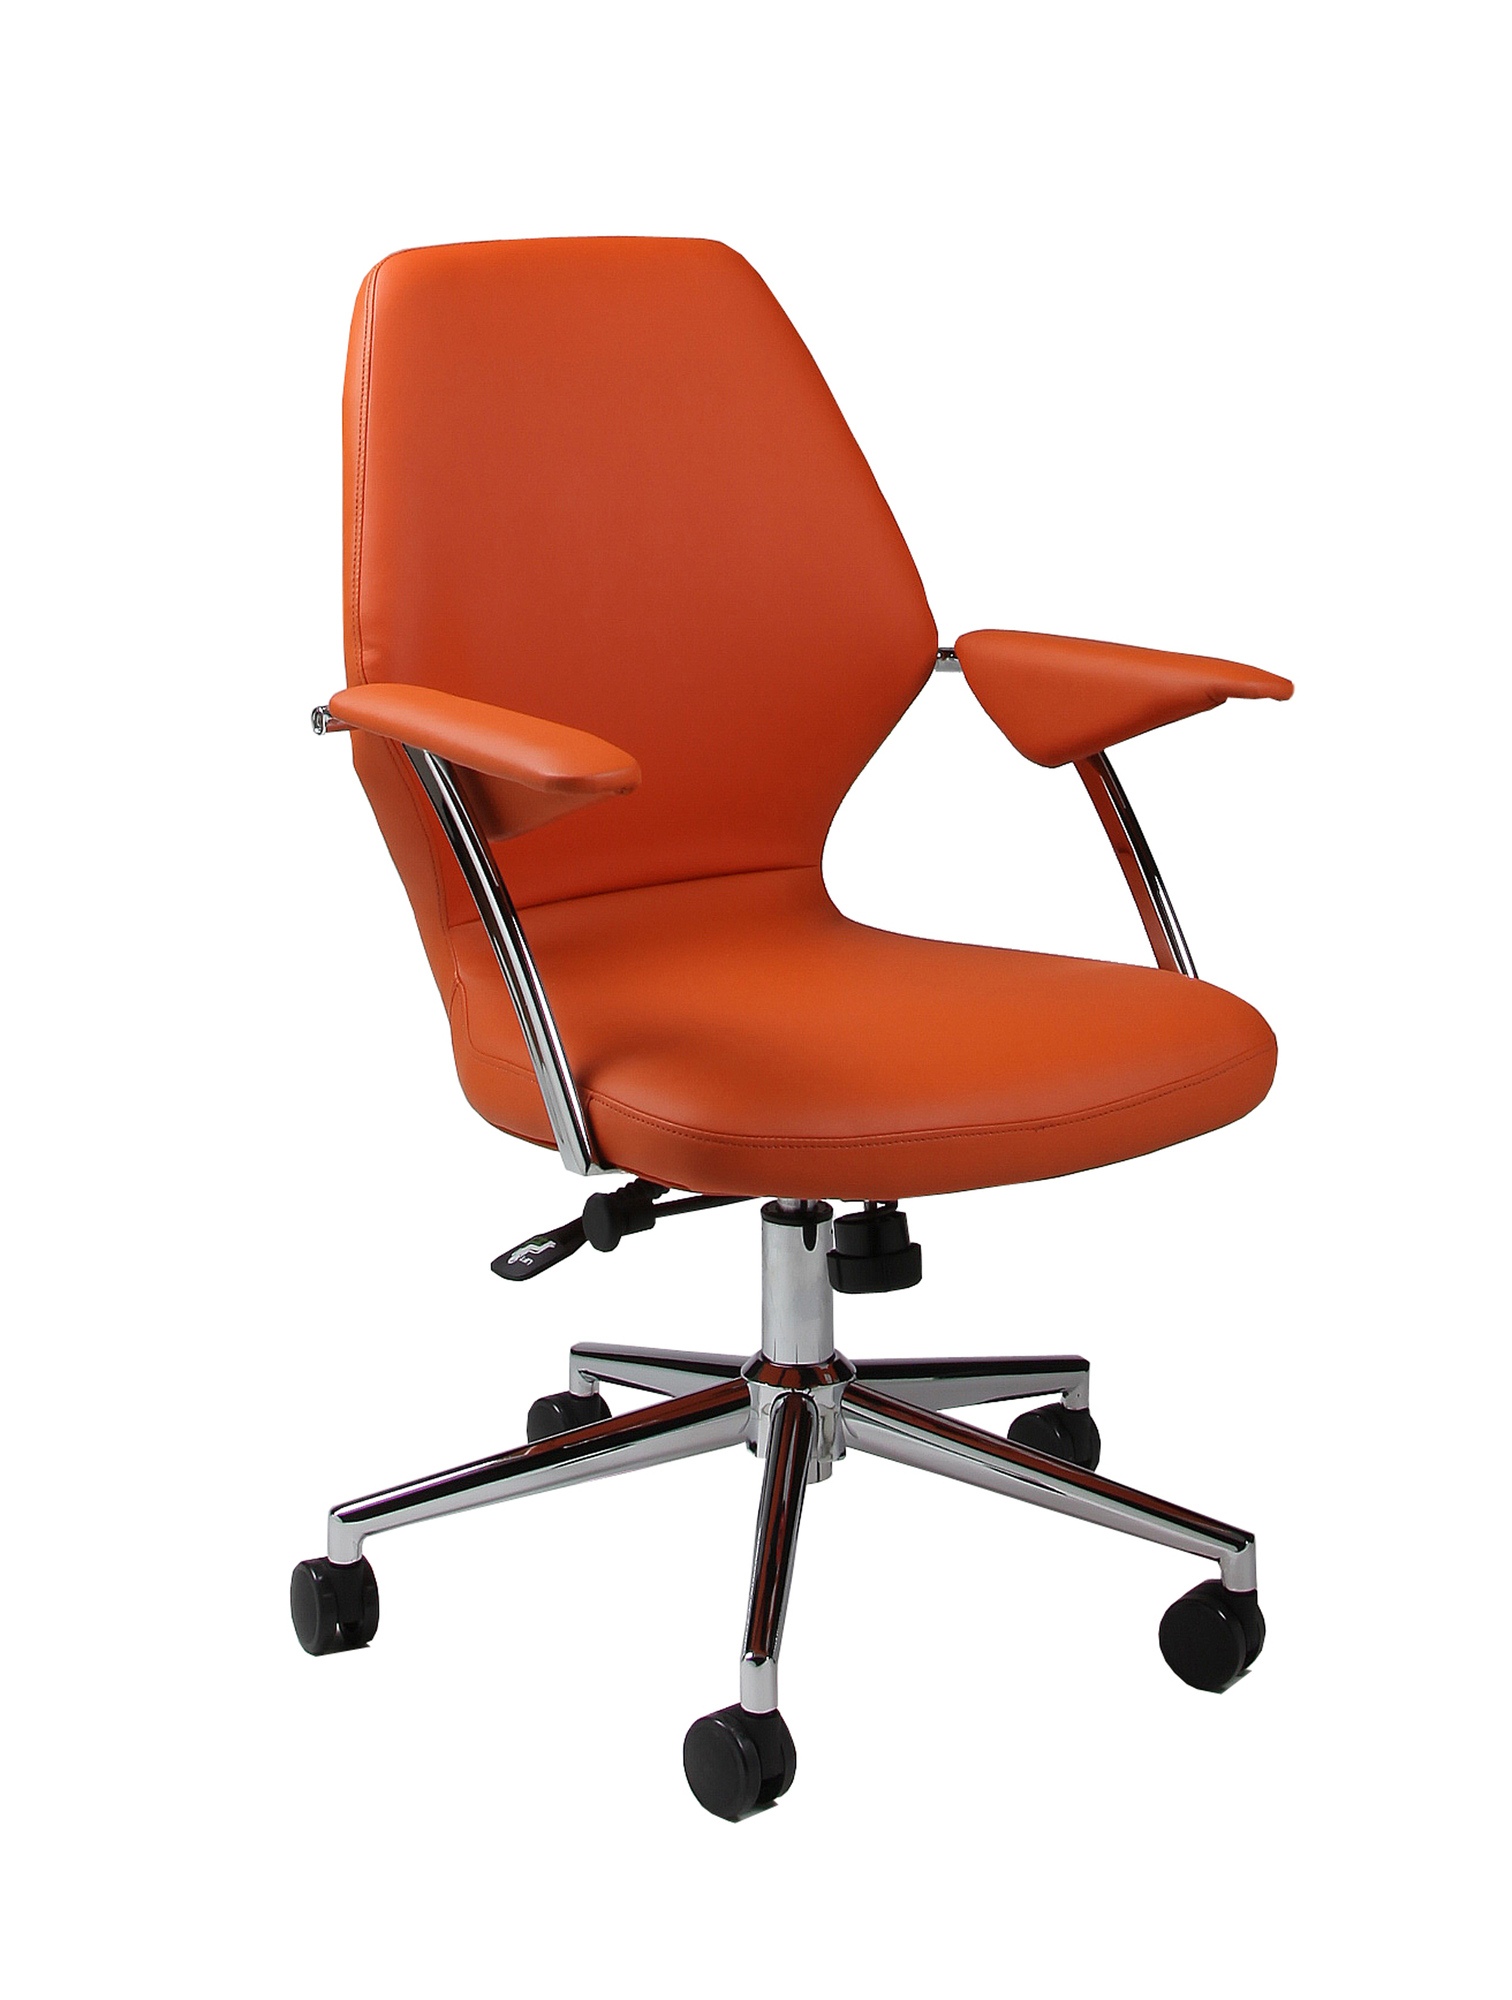 pastel furniture ibanez office chair in orange upholstery ib 164 ch